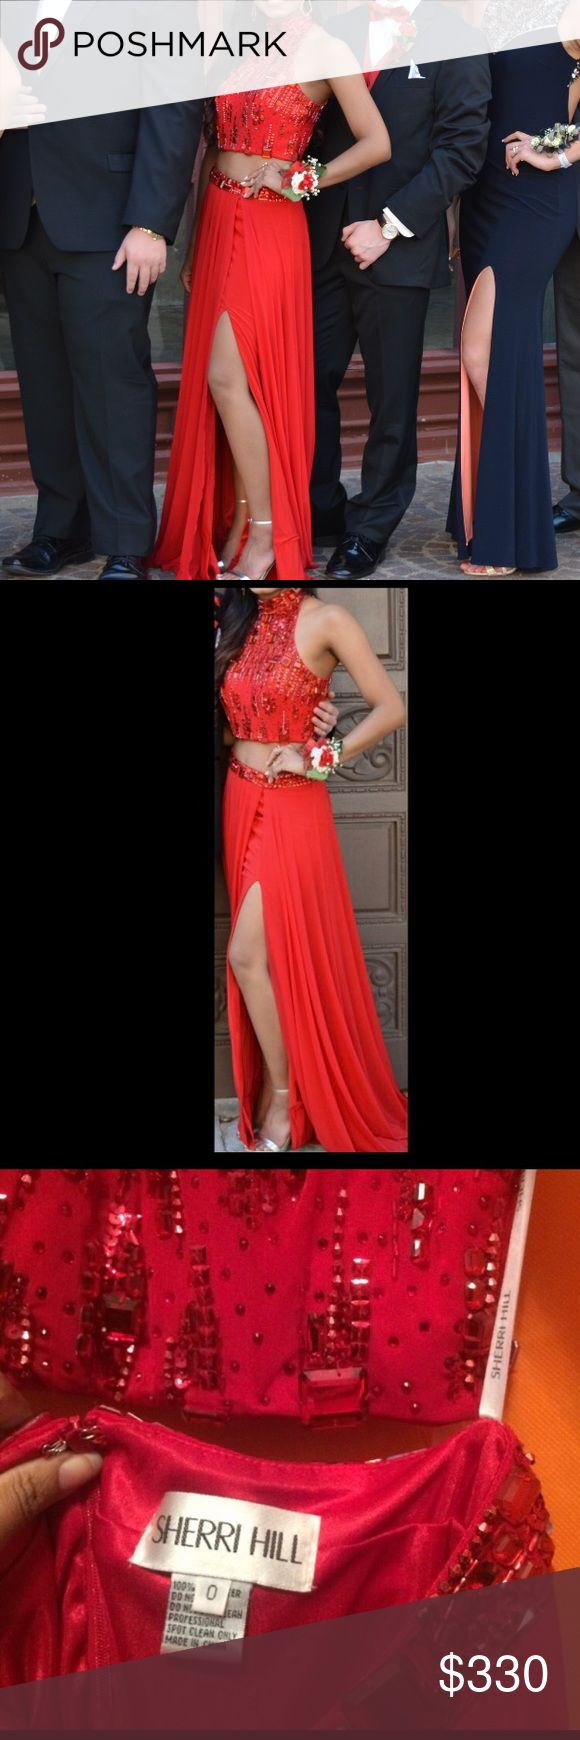 SHERRI HILL RED 2 PEICE PROM DRESS Beautiful red Sherri Hill prom dress! Style 9375. It's a 2 piece and has a pretty slit. Length altered to fit 5 3 with 4 inch heels (but can be undone). Size 0 but runs a little big (fits more like a 2). Worn twice but only for a few hours each time and it's in PERFECT condition! Feel free to ask any questions/more pictures. Willing to go much lower on eBay/️️ :) (same as other listing in my closet, jut need more views so I can sell soon) Sherri Hill…